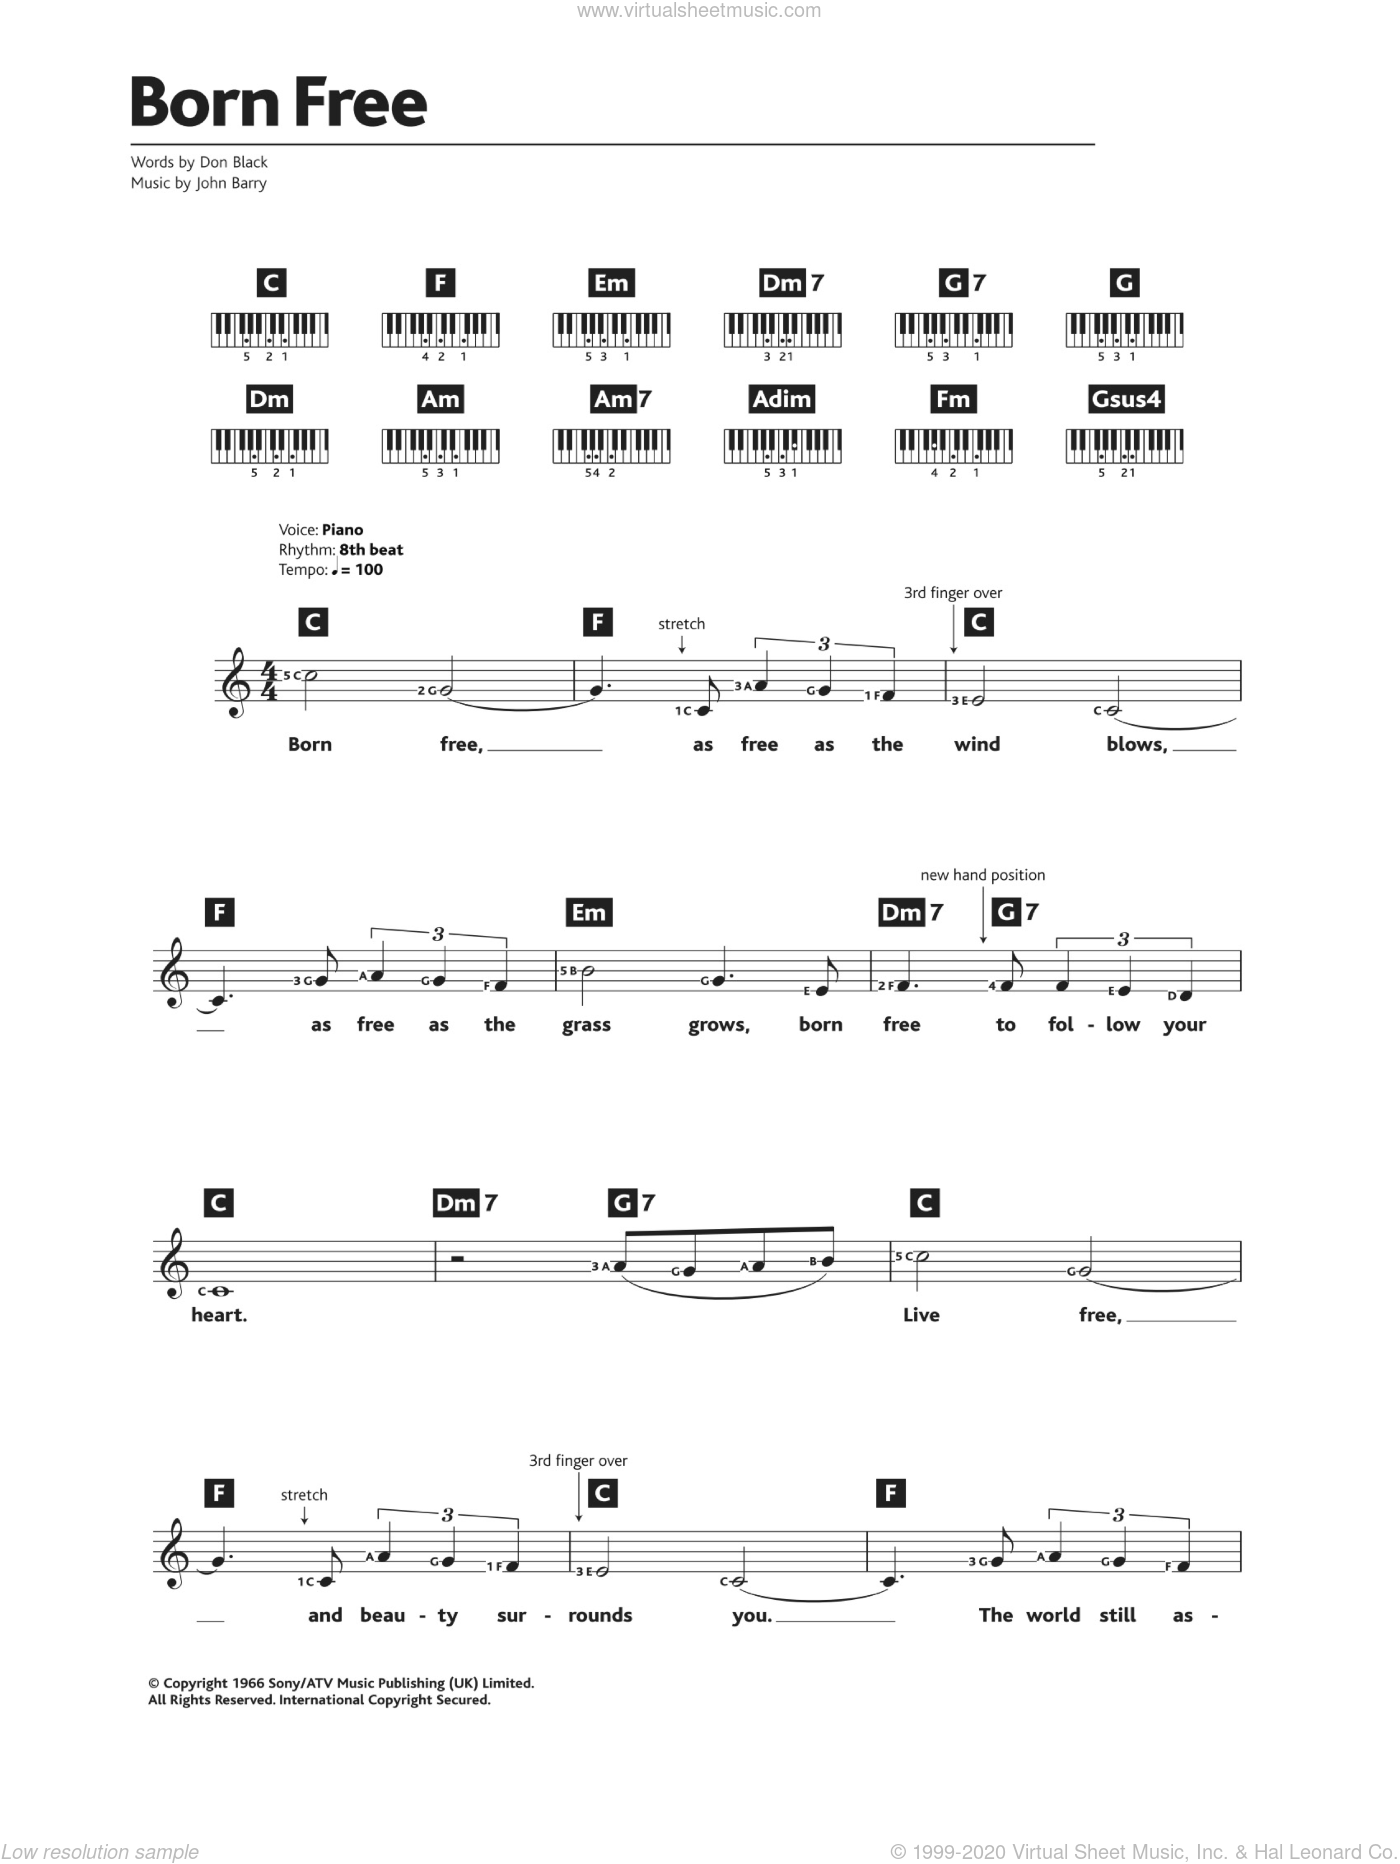 Born Free sheet music for piano solo (chords, lyrics, melody) by John Barry, Matt Monro and Don Black. Score Image Preview.